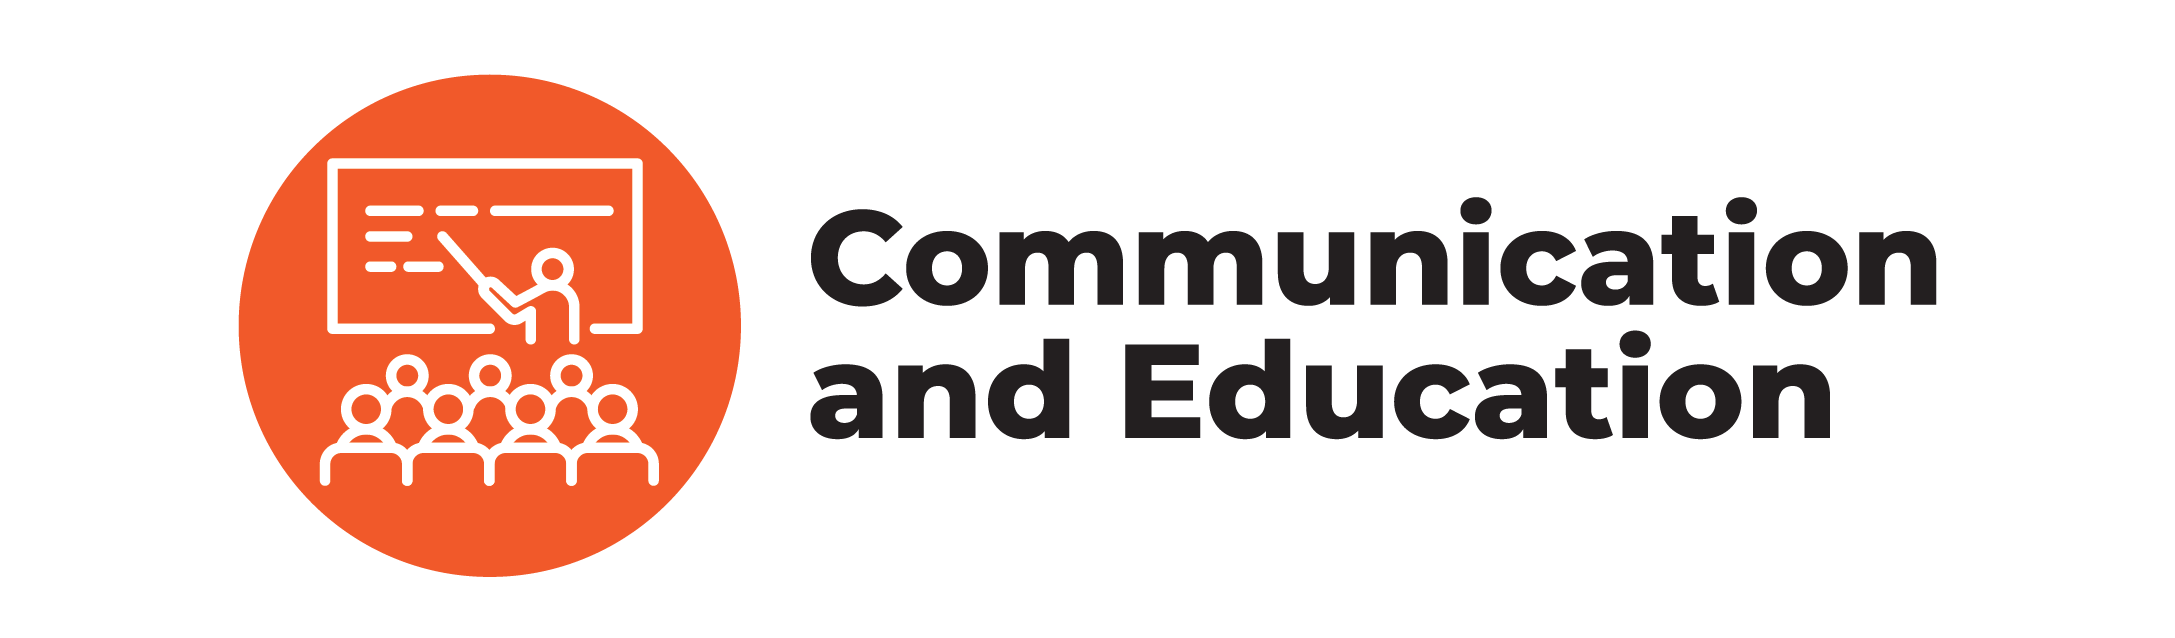 OSI_ICON_Communication and Education